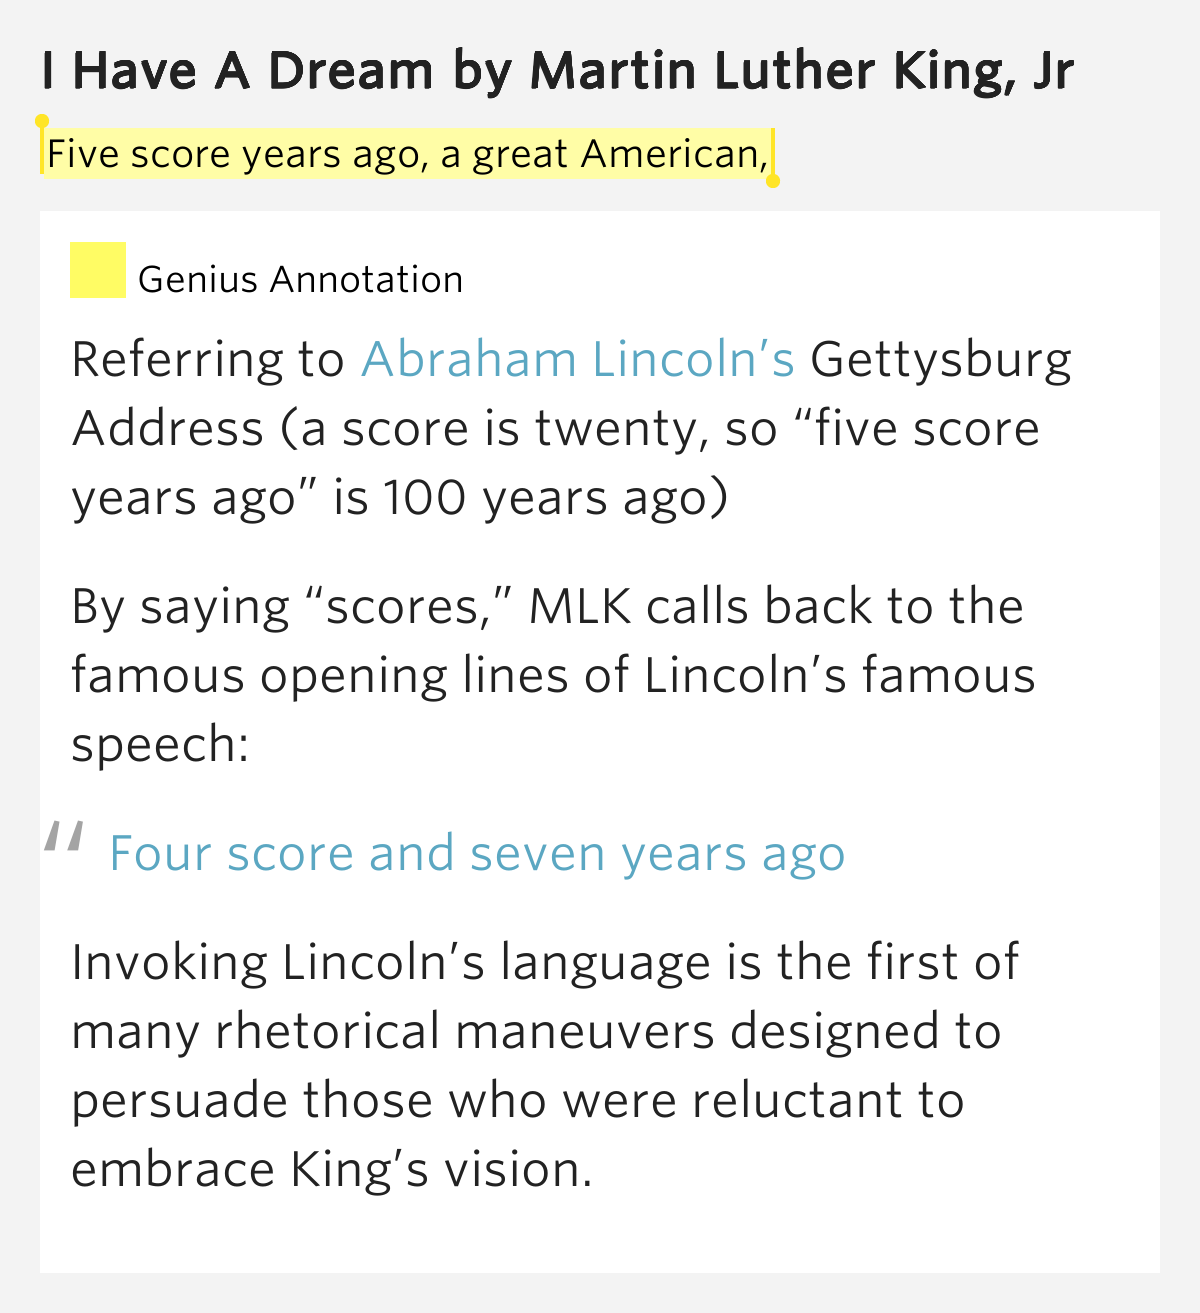 comparison of i have a dream and the gettysburg address I have a dream is a public speech delivered by american civil rights activist  martin luther  early in his speech, king alludes to abraham lincoln's  gettysburg address by  the rhetoric of king's speech can be compared to the  rhetoric of old.